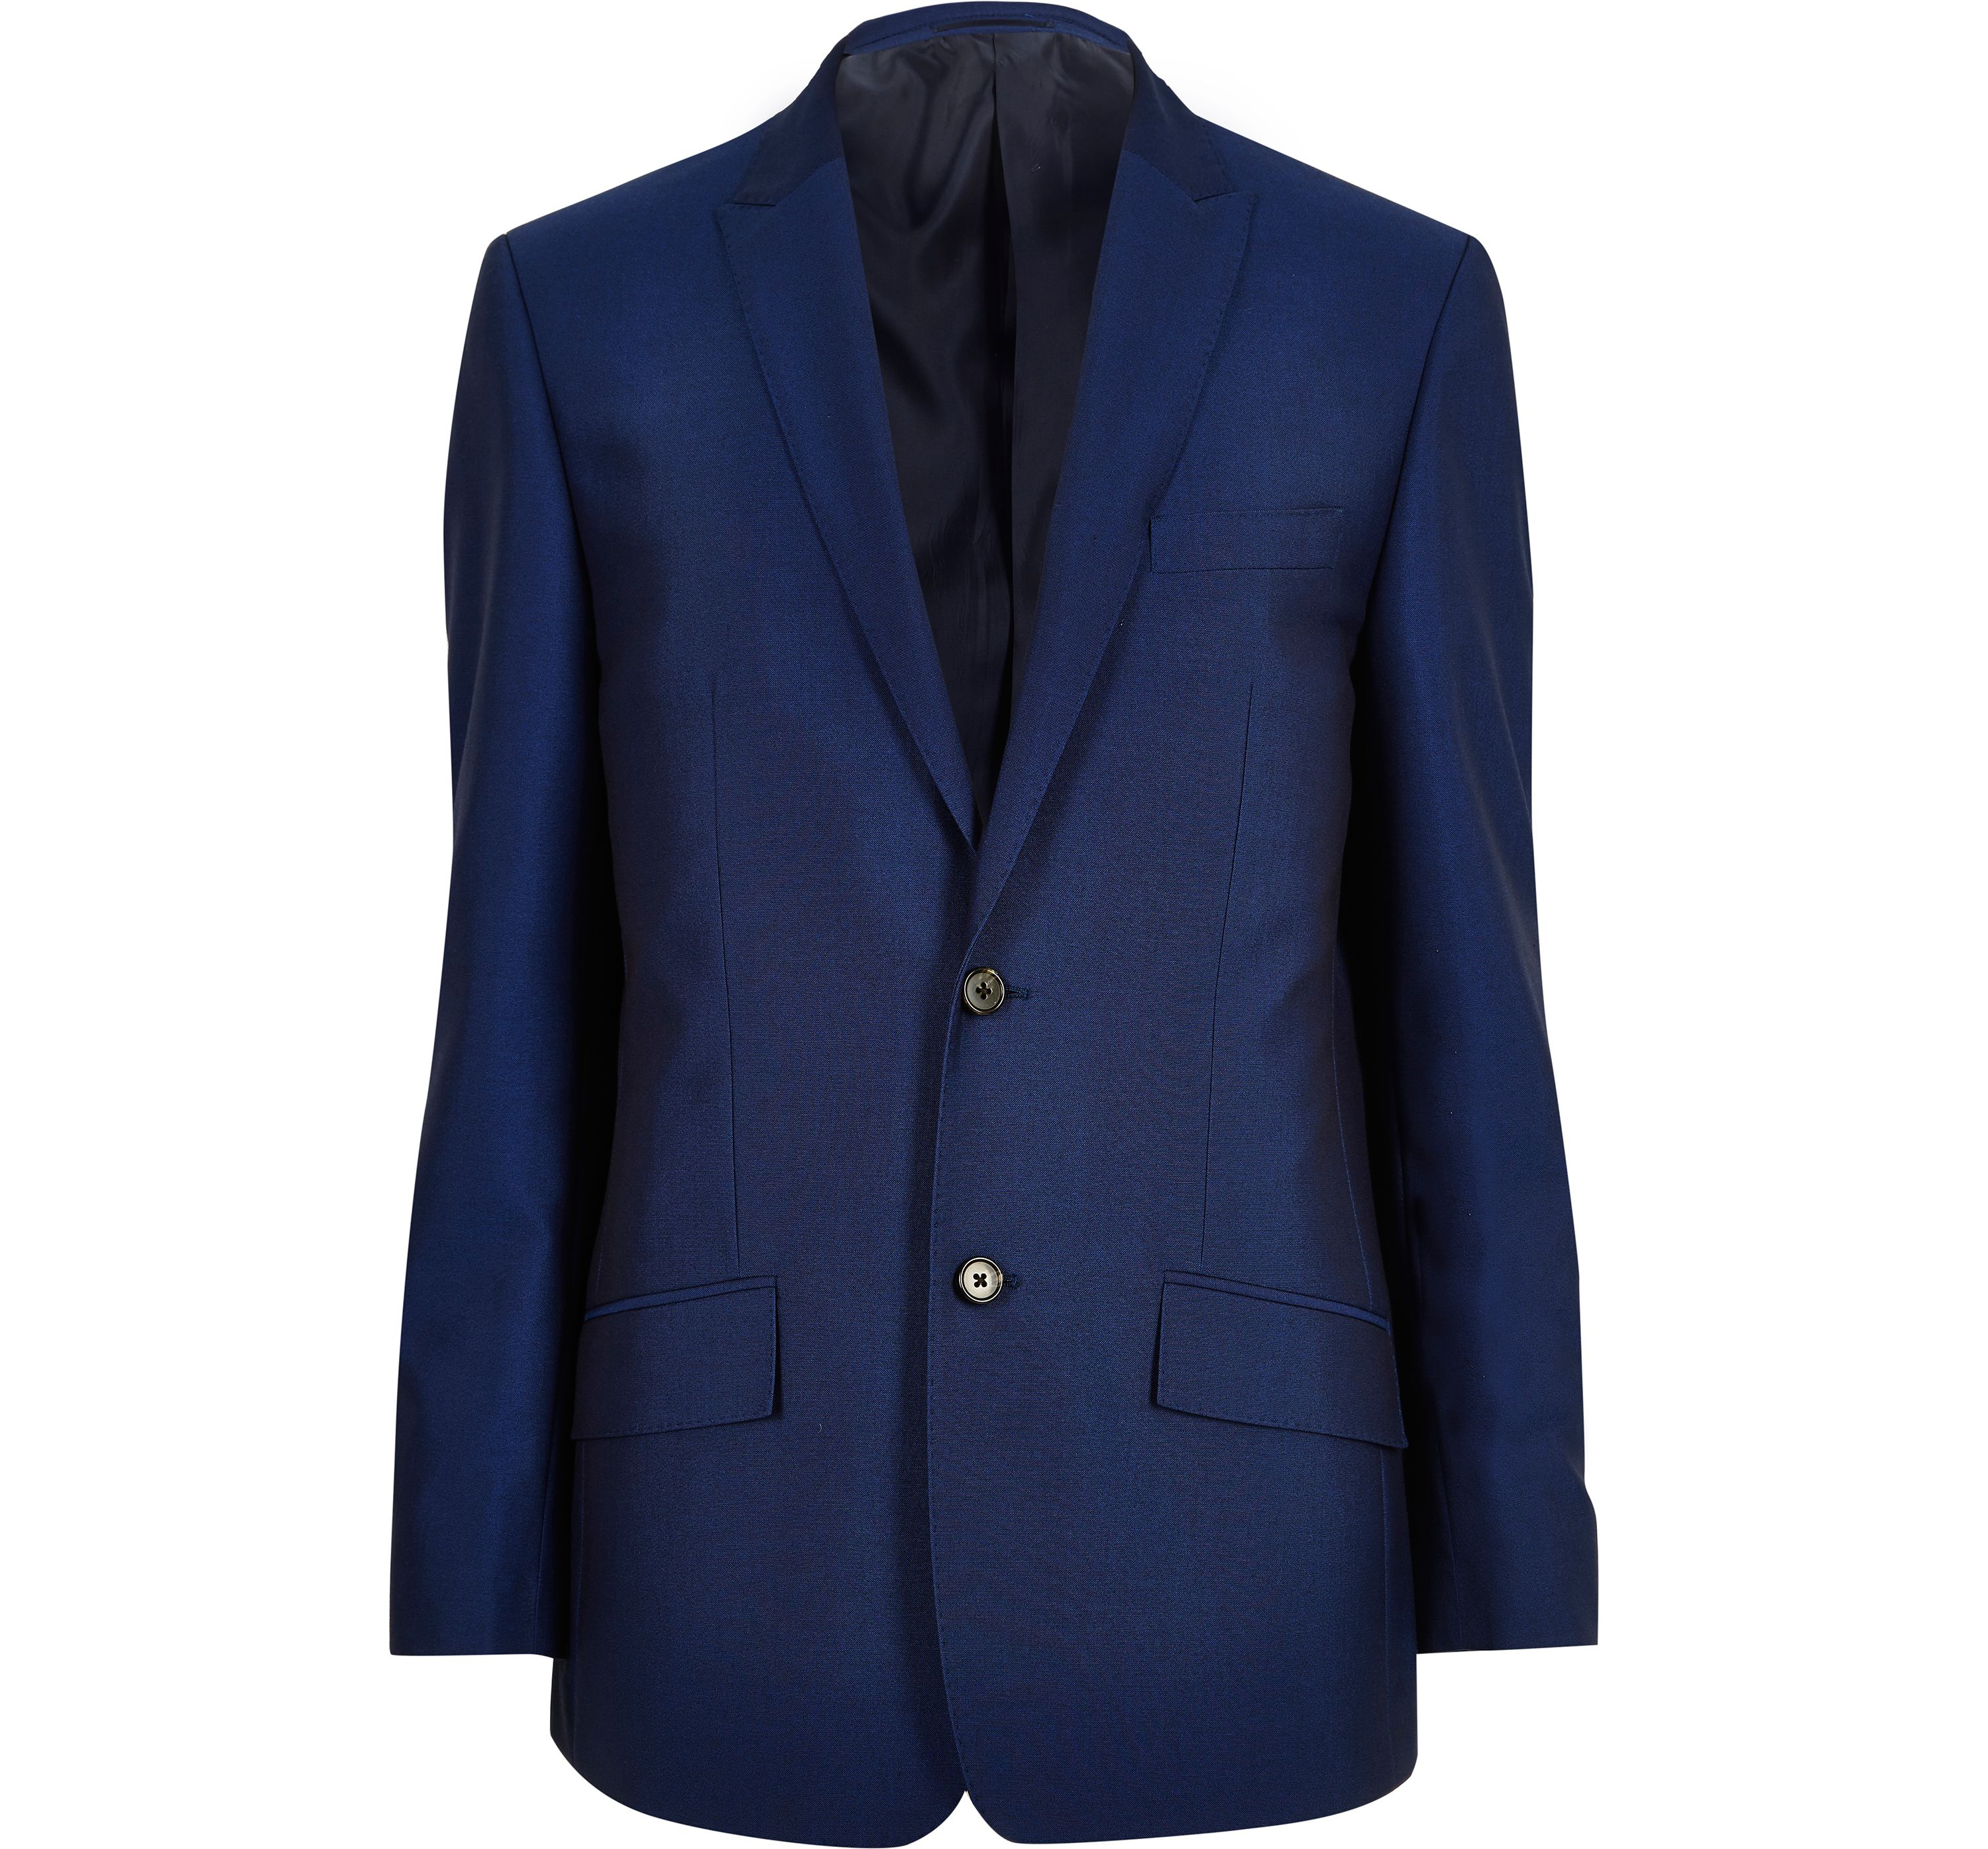 River Island Mens Blue tailored suit jacket